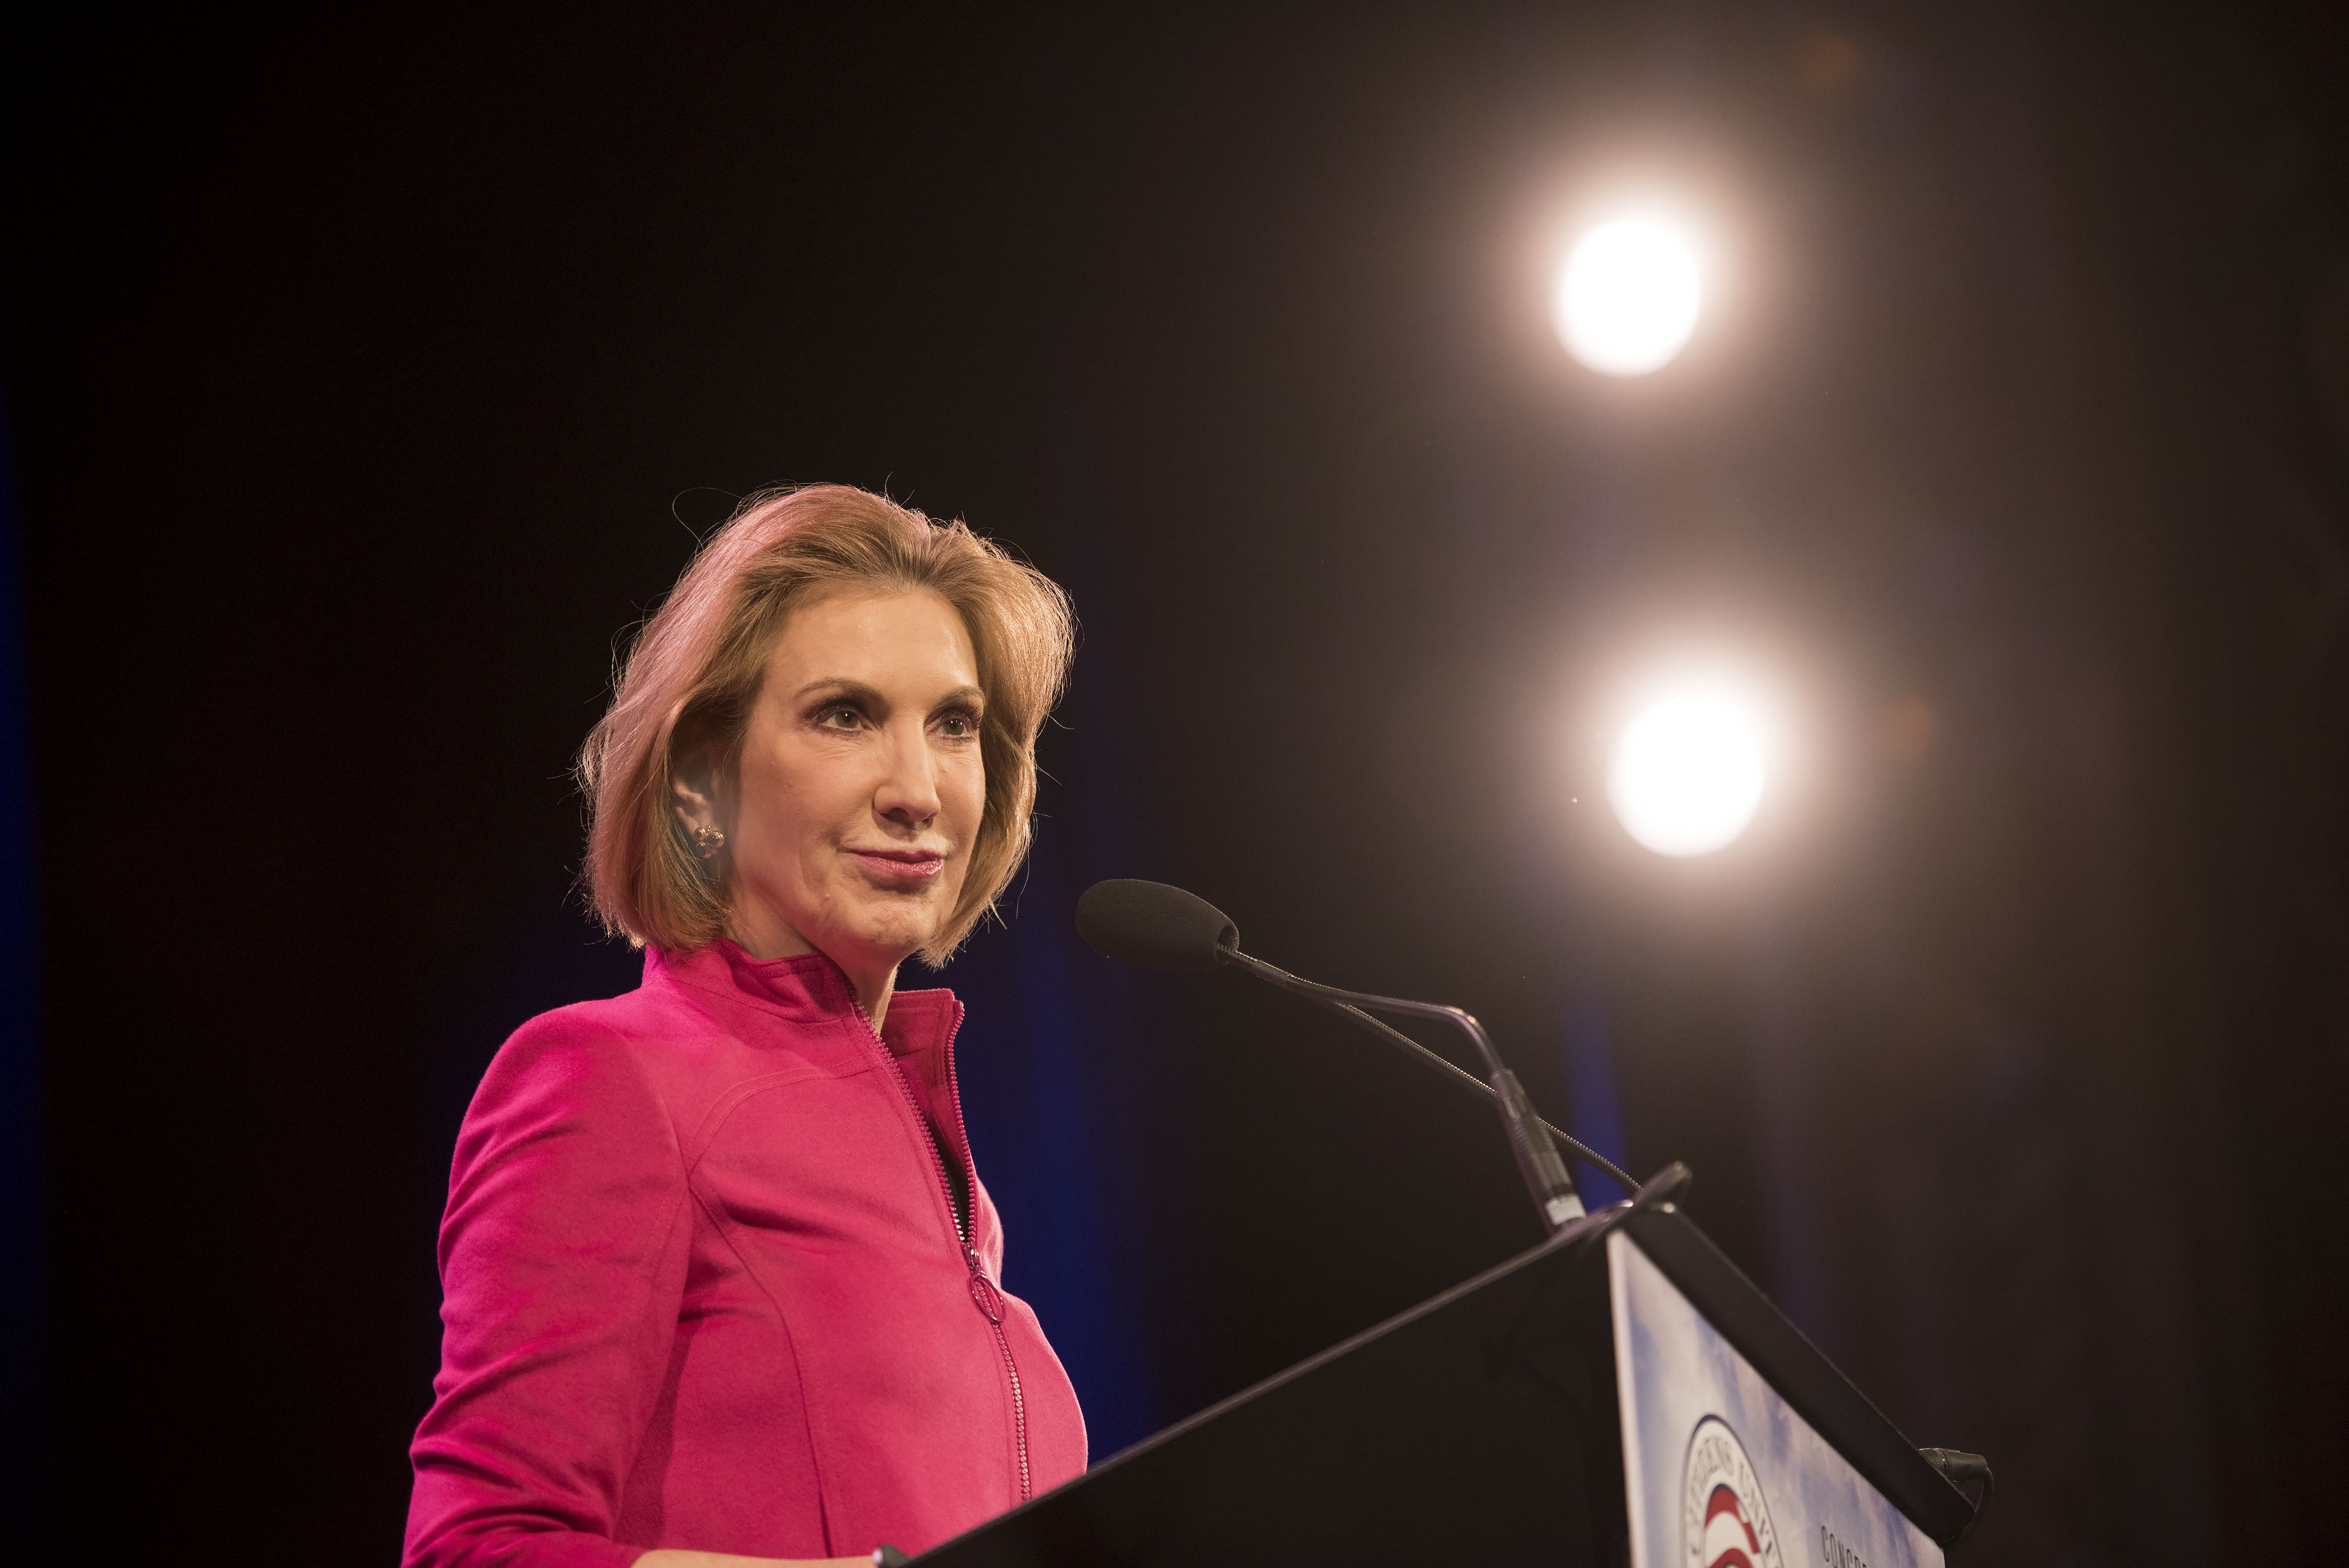 Carly Fiorina, former chairman and chief executive officer of Hewlett-Packard Co., during the Iowa Freedom Summit in Des Moines, Iowa on Jan. 24, 2015.